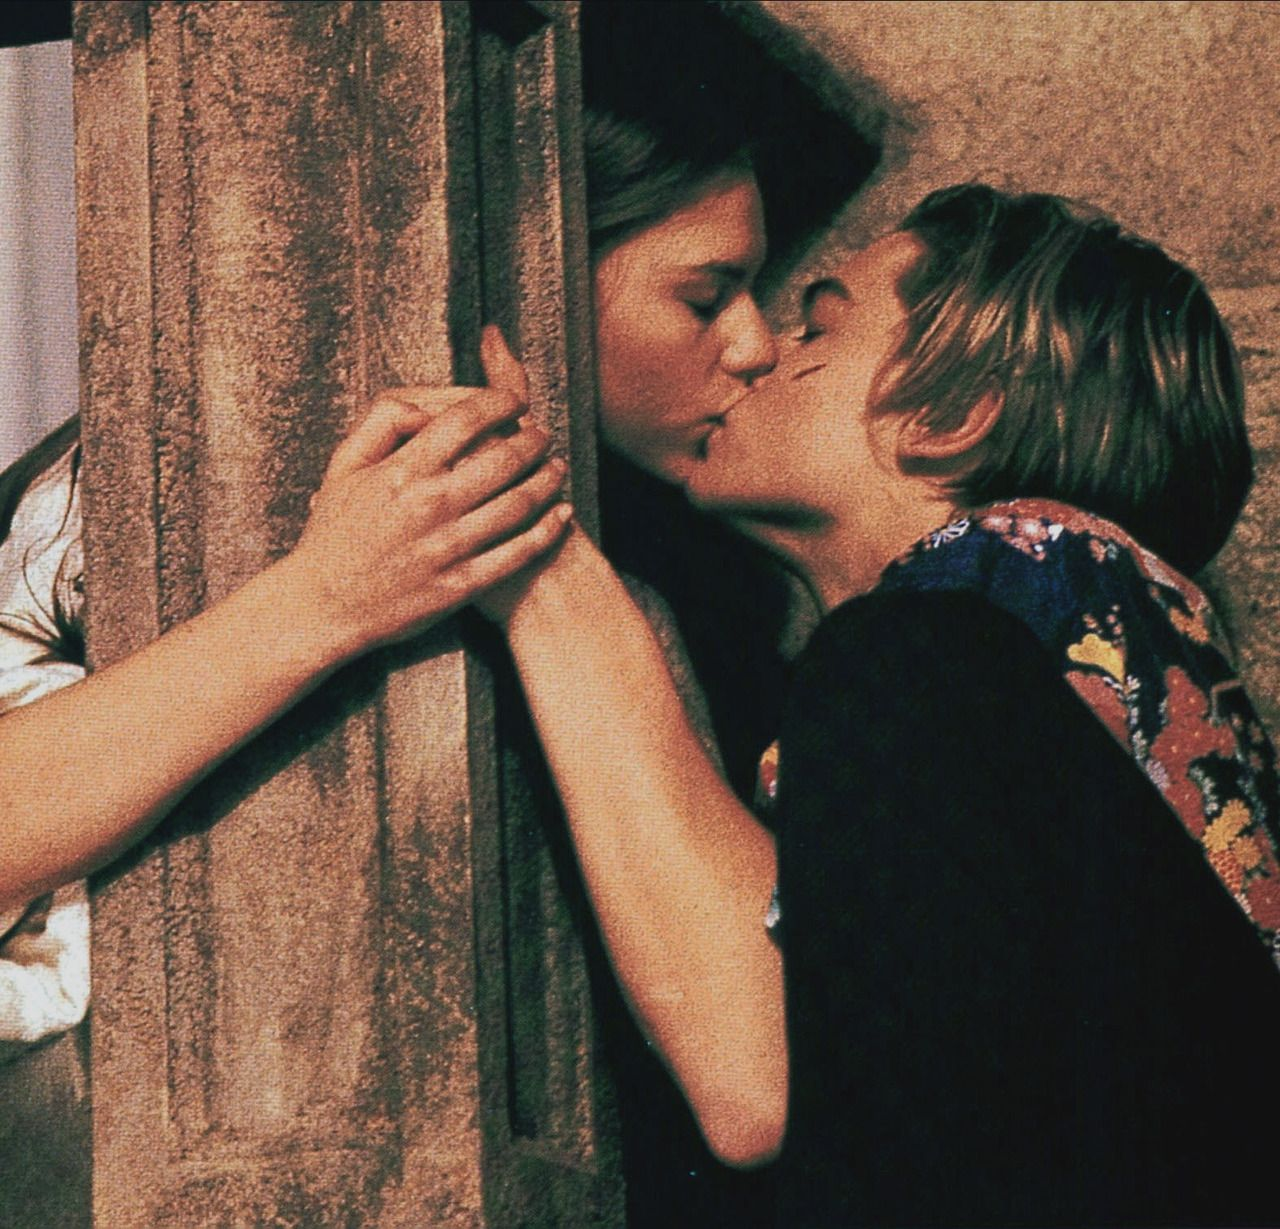 romeo and juliet directed by baz luhrmann